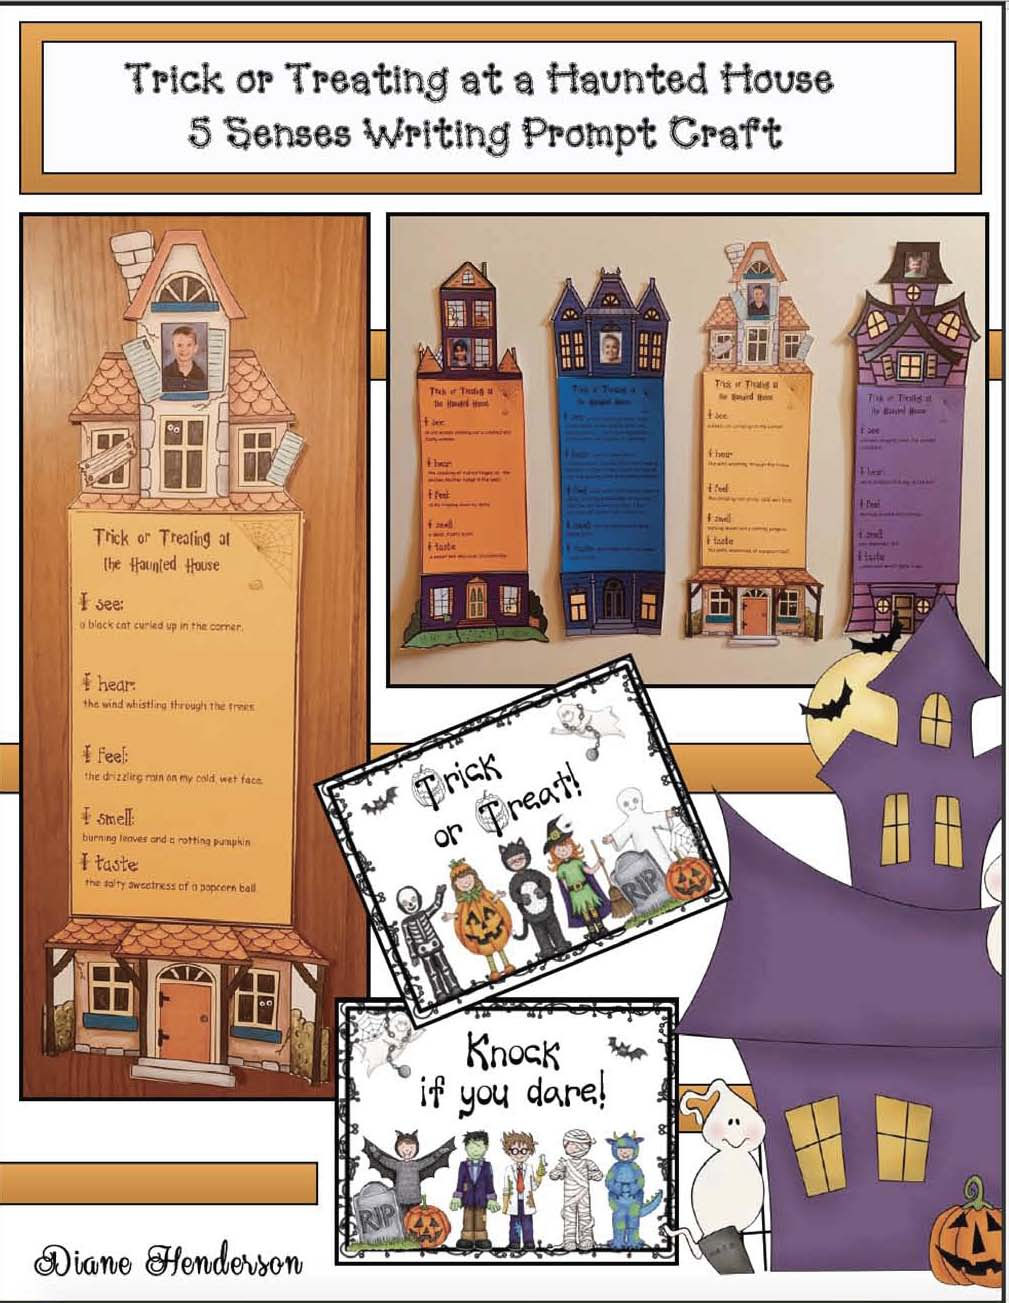 haunted house craft, halloween graphing extensions, writing rubrics,haunted house writing prompts, haunted house activities, october writing prompts, october bulletin board ideas, halloween graphing extensions, halloween bulletin board ideas, halloween activities, ideas for Halloween party day,